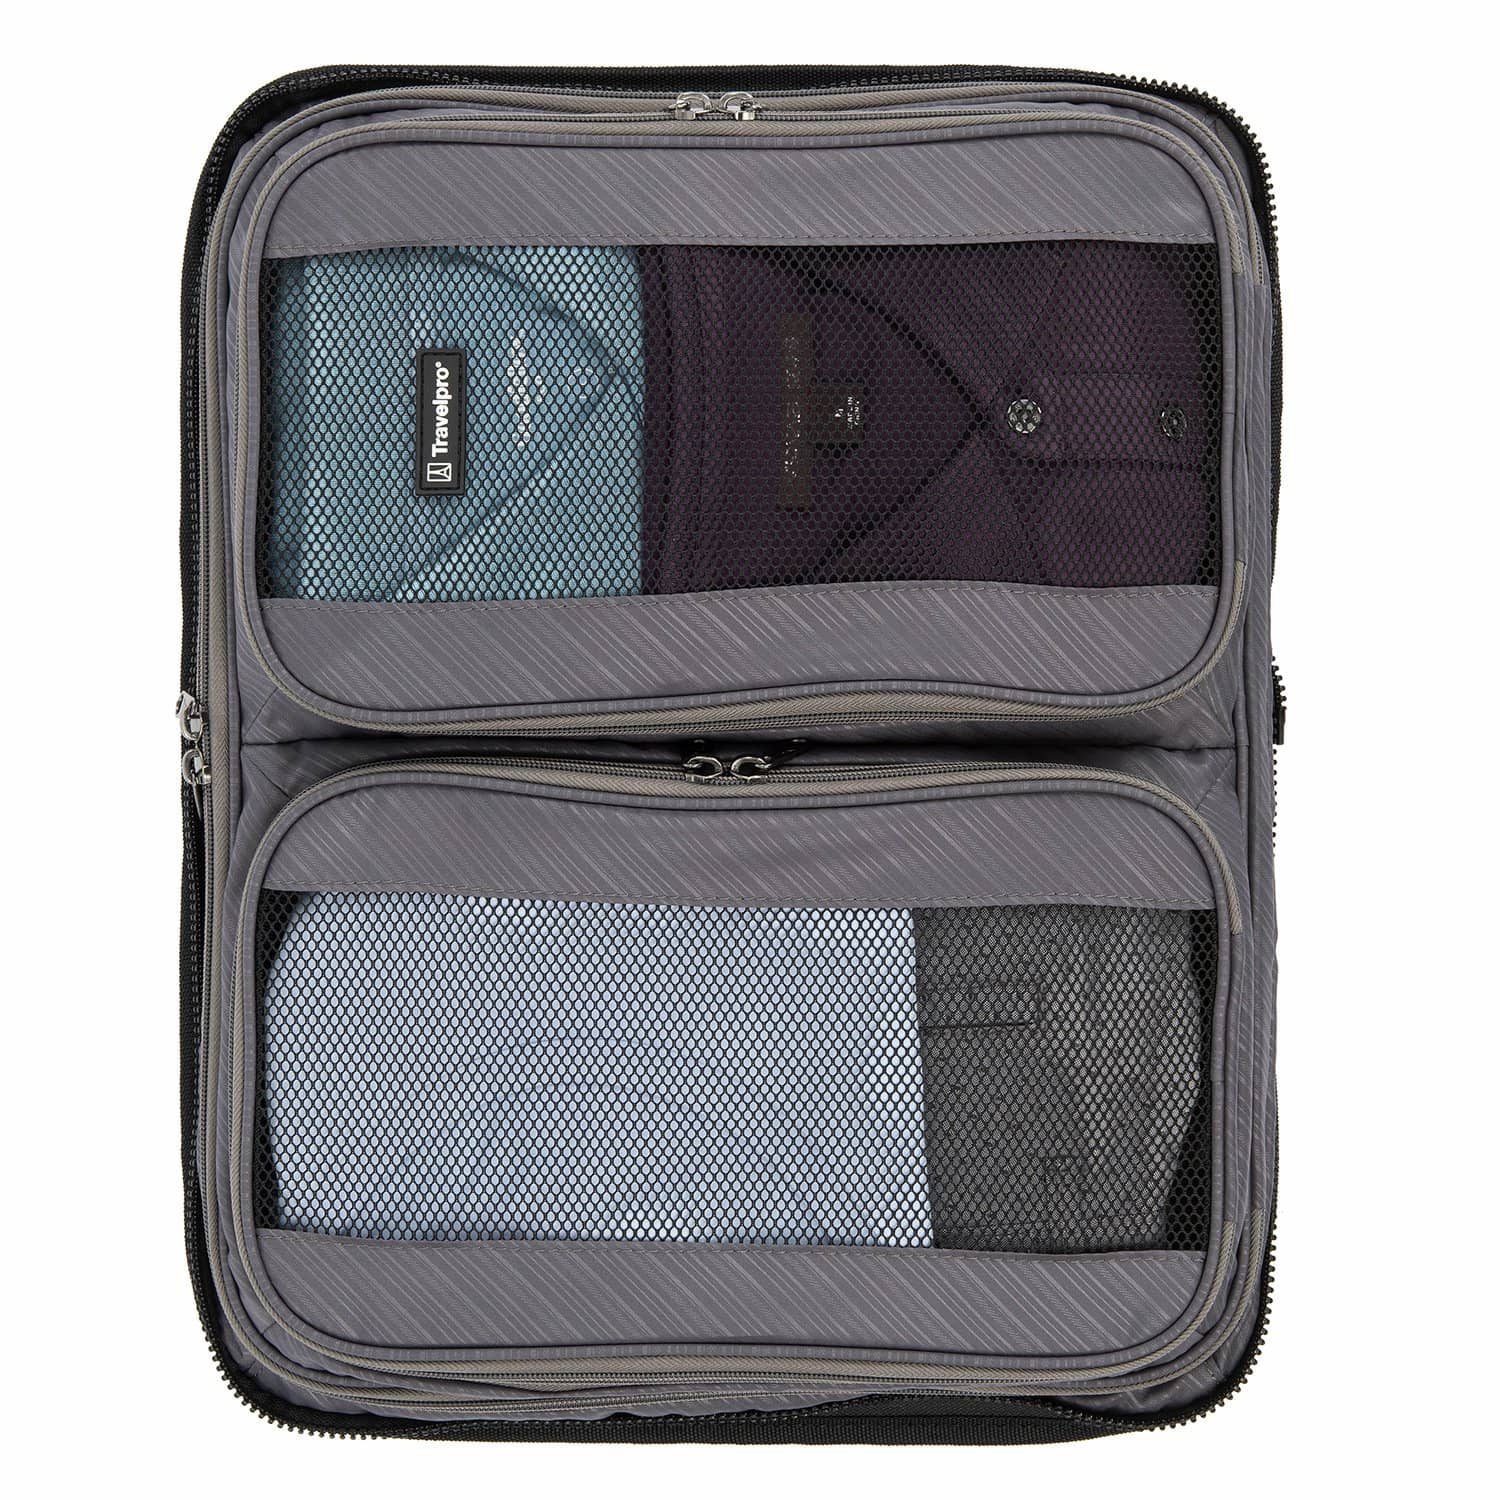 Crew™ VersaPack™ Packing Cubes Organizer (Max Size Compatible)